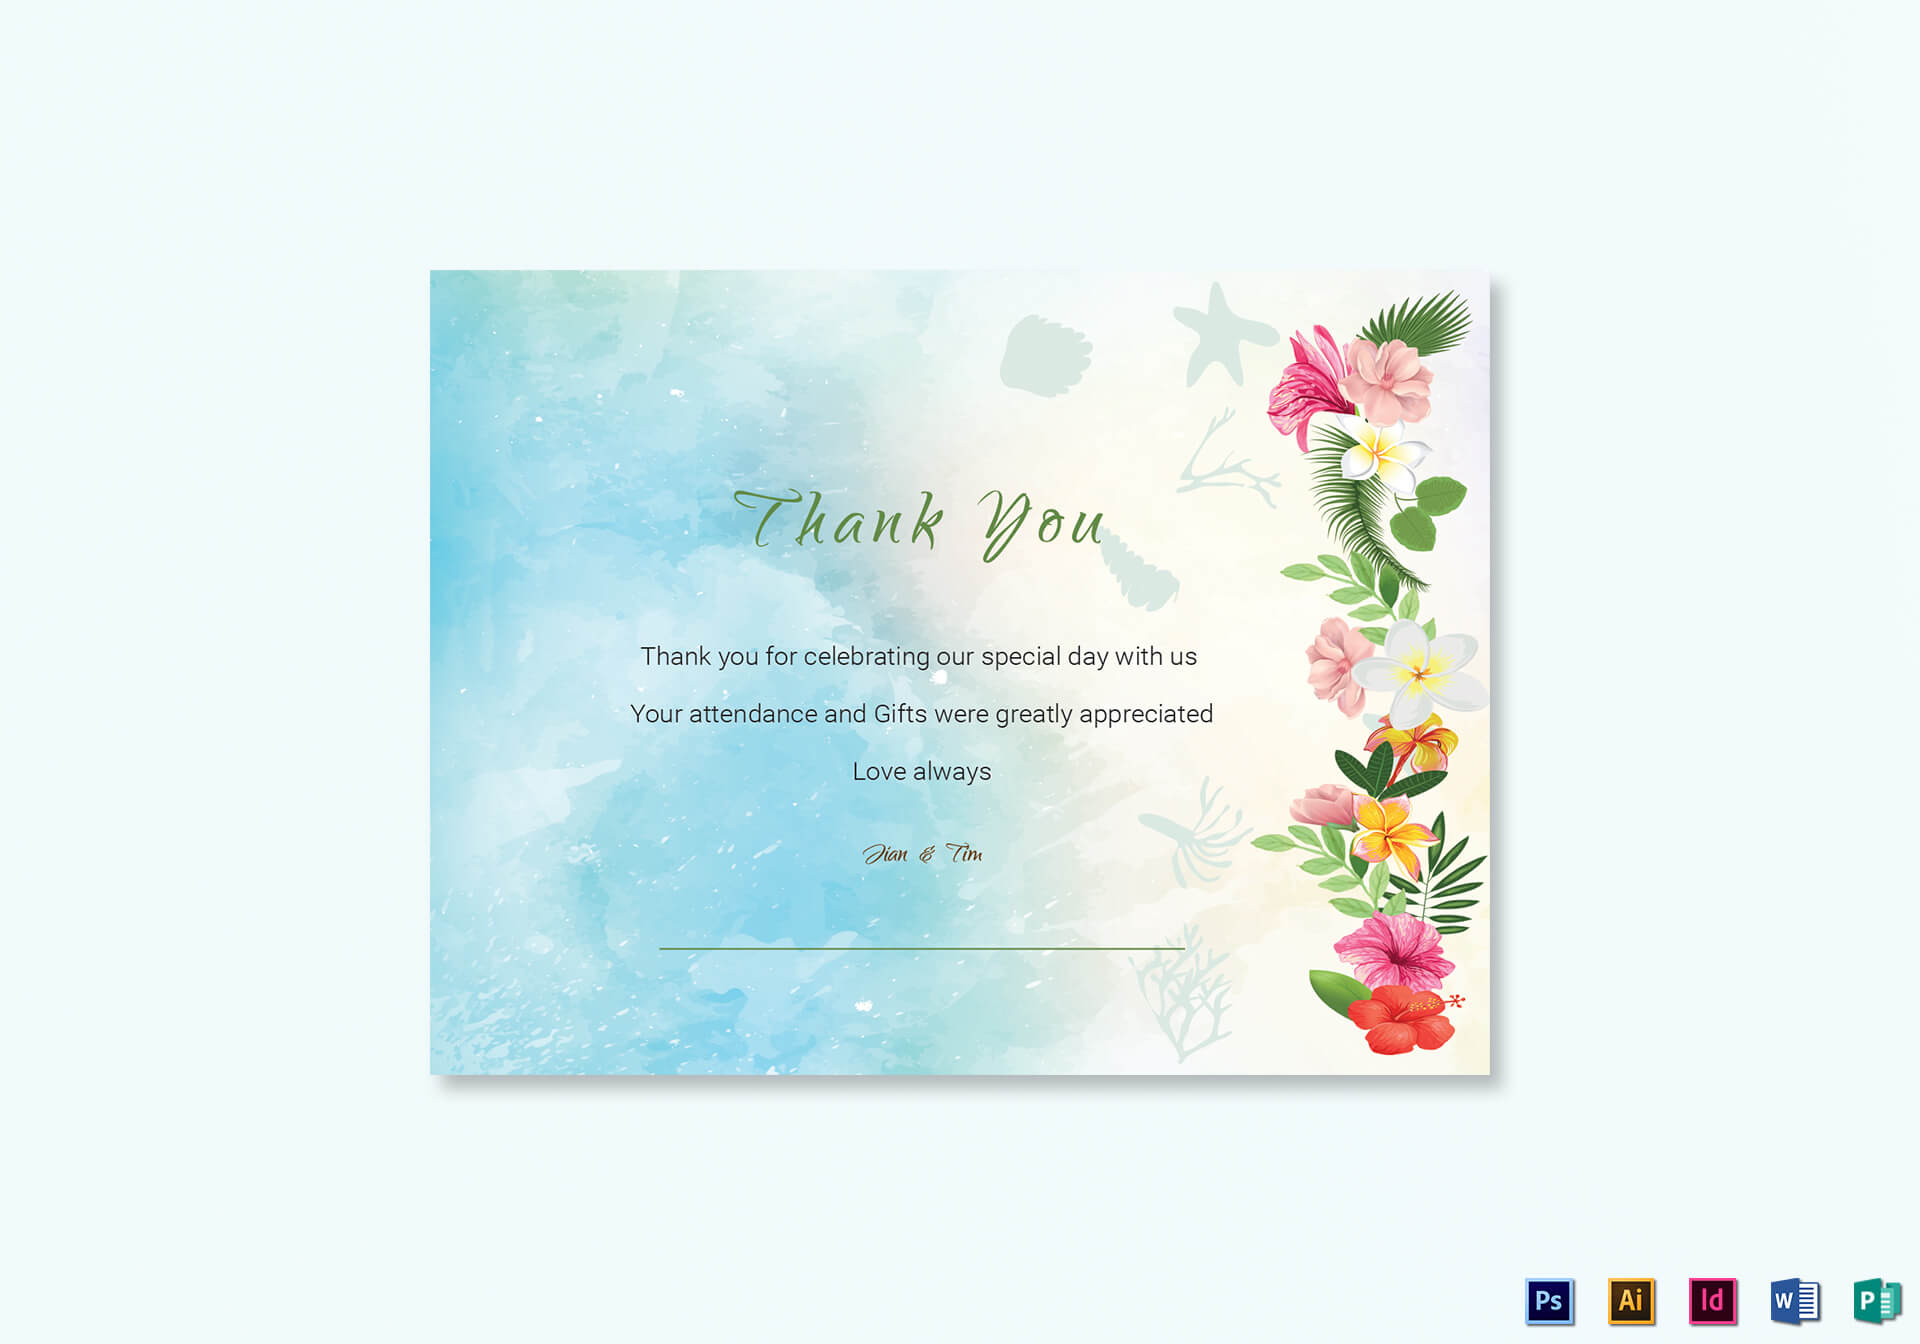 010 Thank You Card Template Word Top Ideas Business Free Intended For Thank You Card Template Word